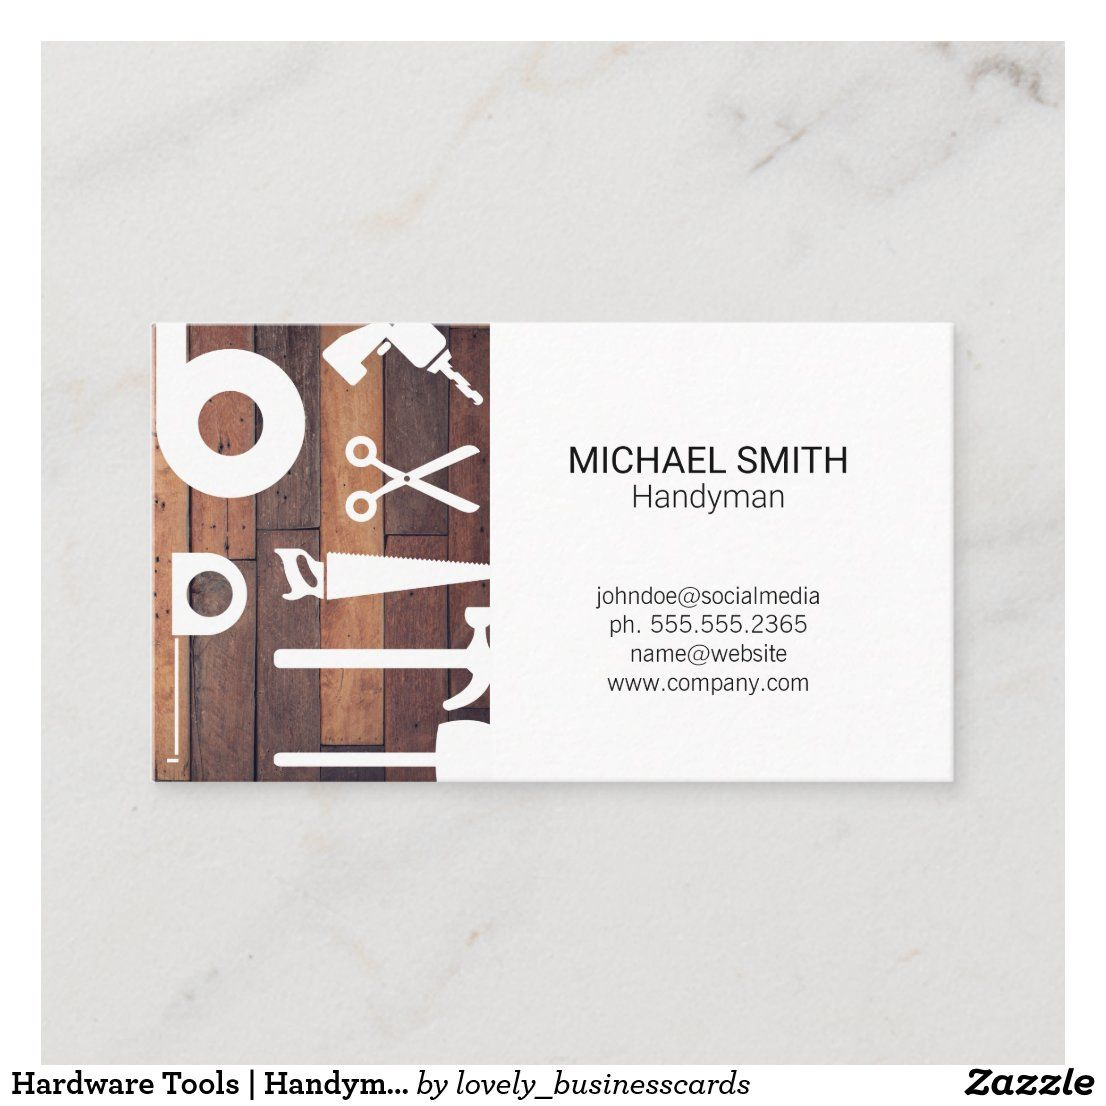 Hardware Tools Handyman Property Manager Business Card Zazzle Com In 2021 Handyman Property Management Business Cards